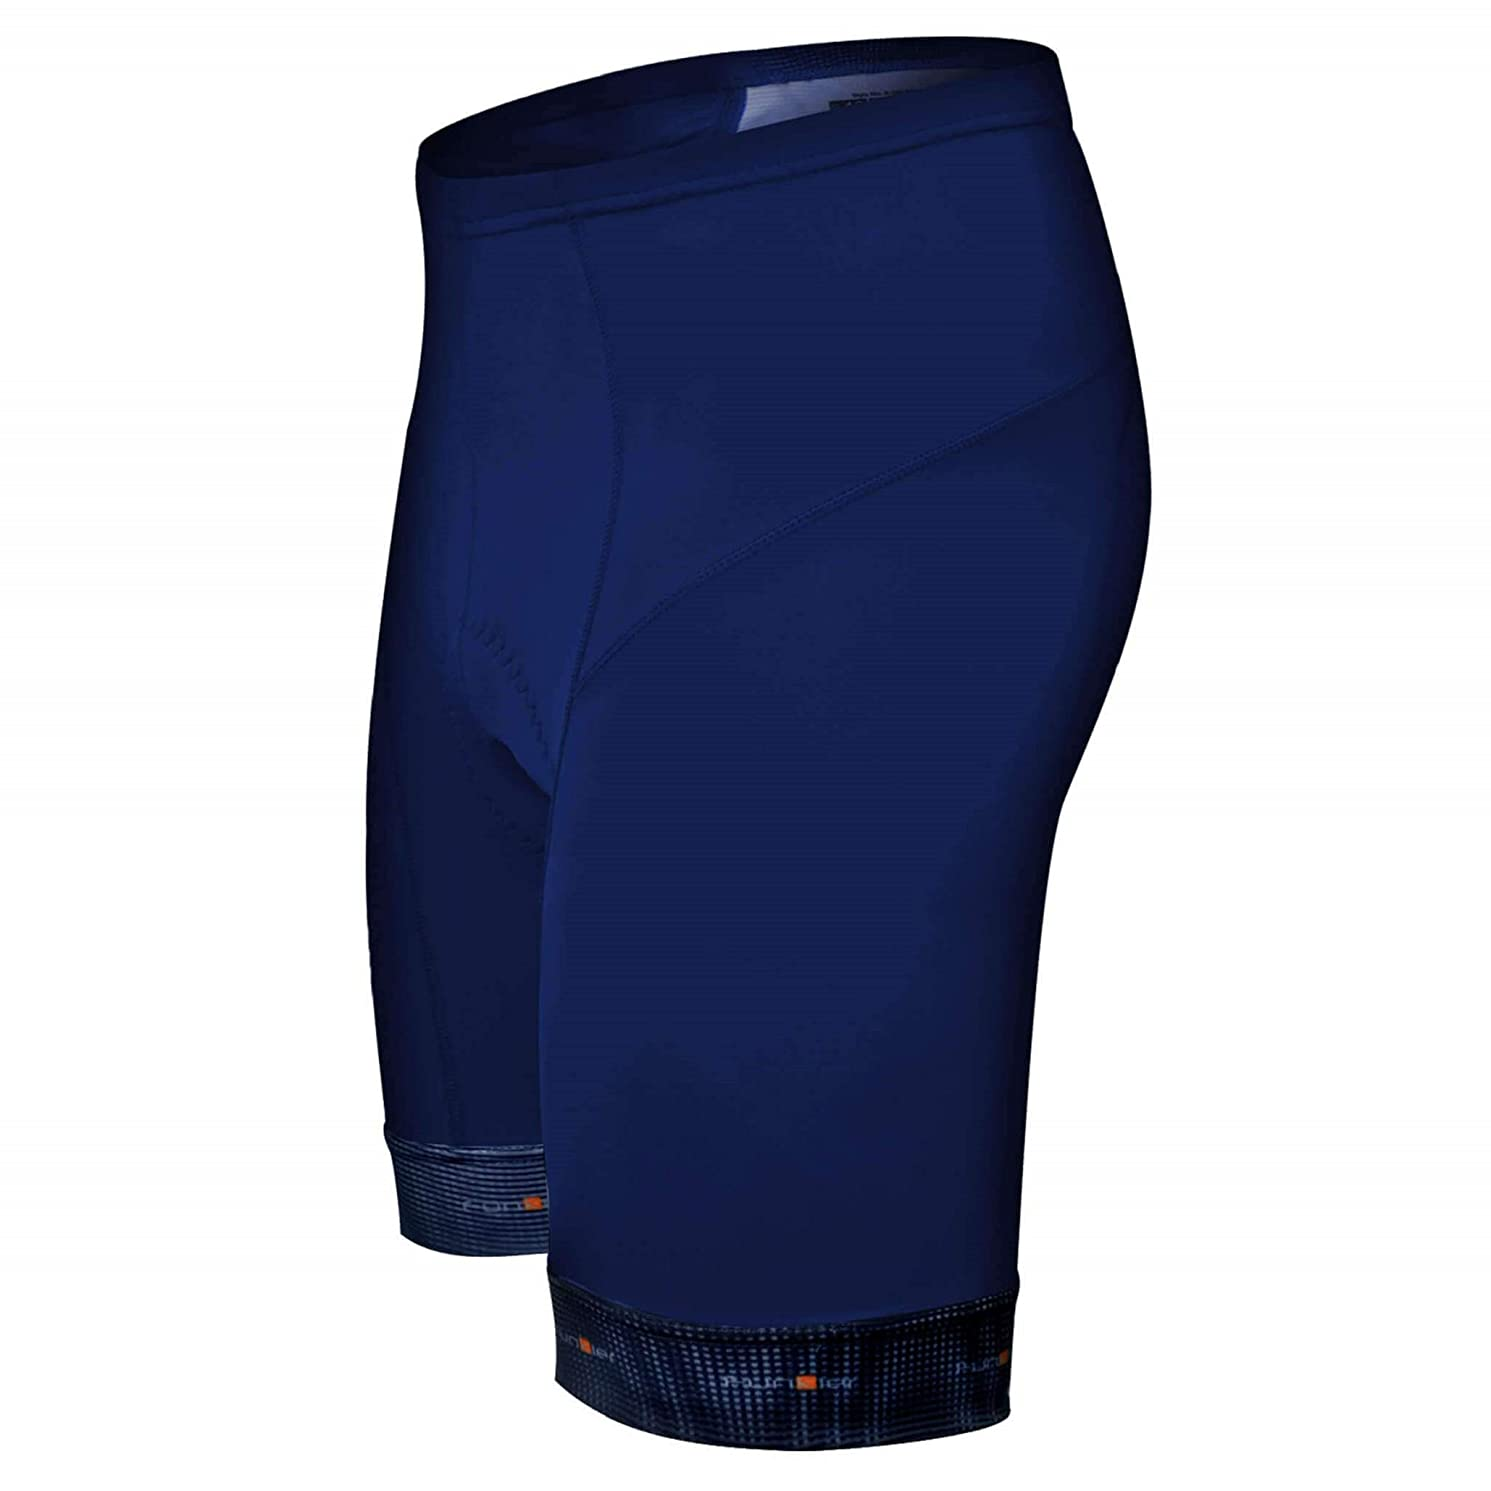 Funkier Cycling Shorts Tights Bib - Dry fit Technology with Special Padding